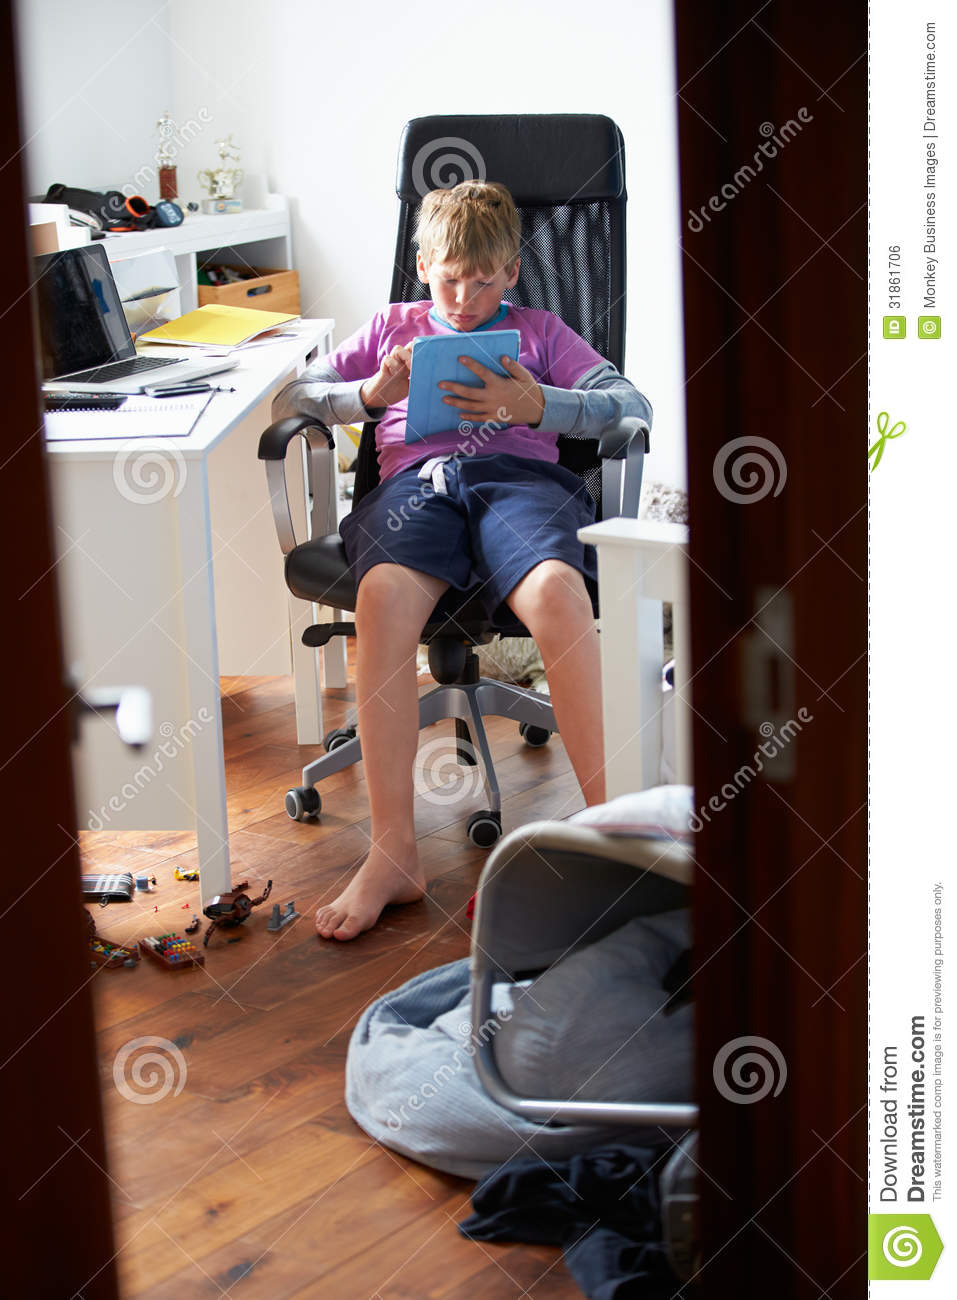 Boy Playing Video Game In Bedroom Stock Photo Image Of